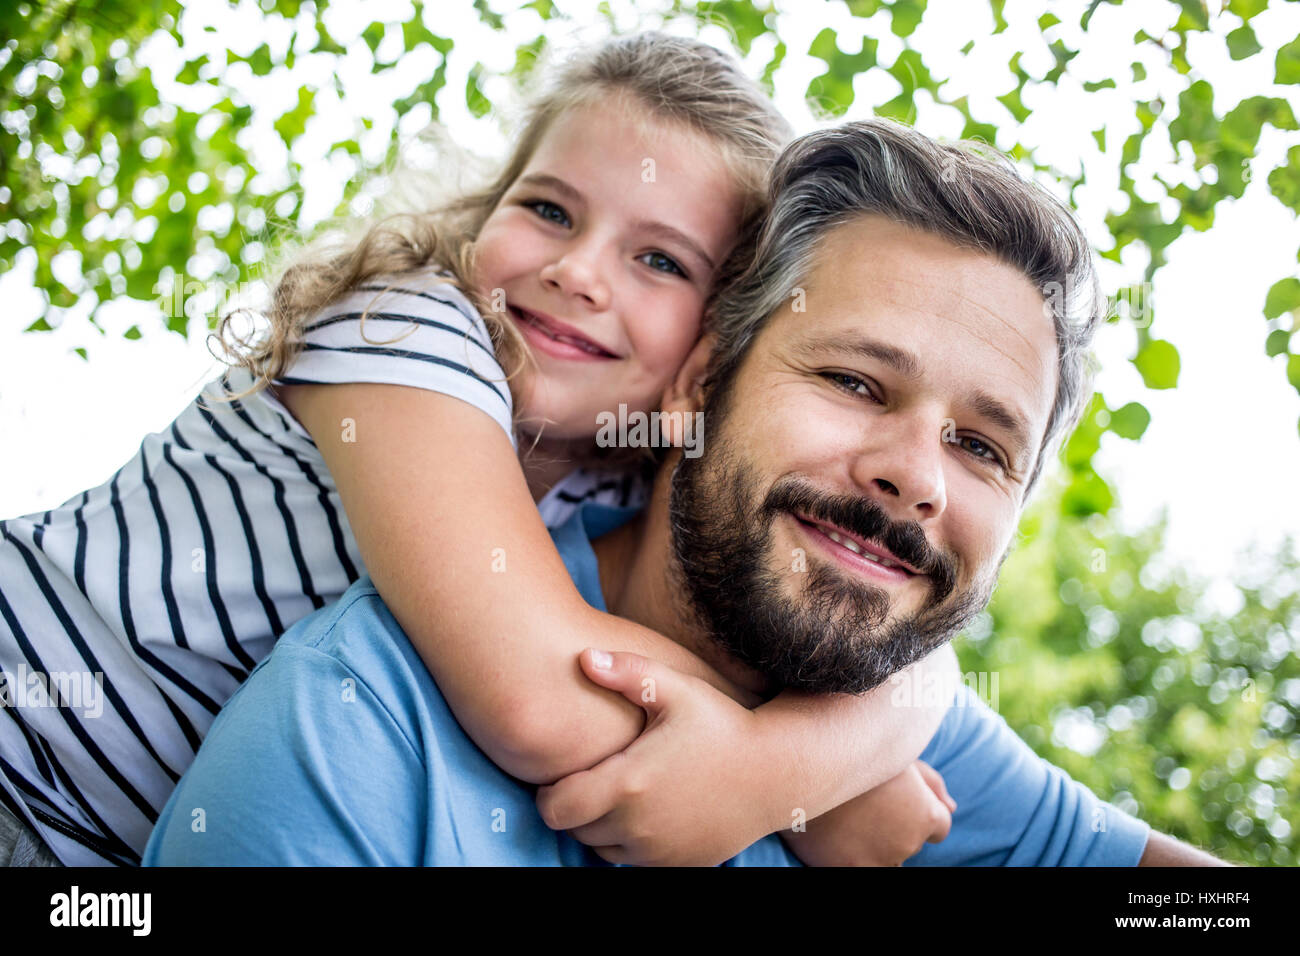 Daugther embrace father in piggyback ride at the park - Stock Image